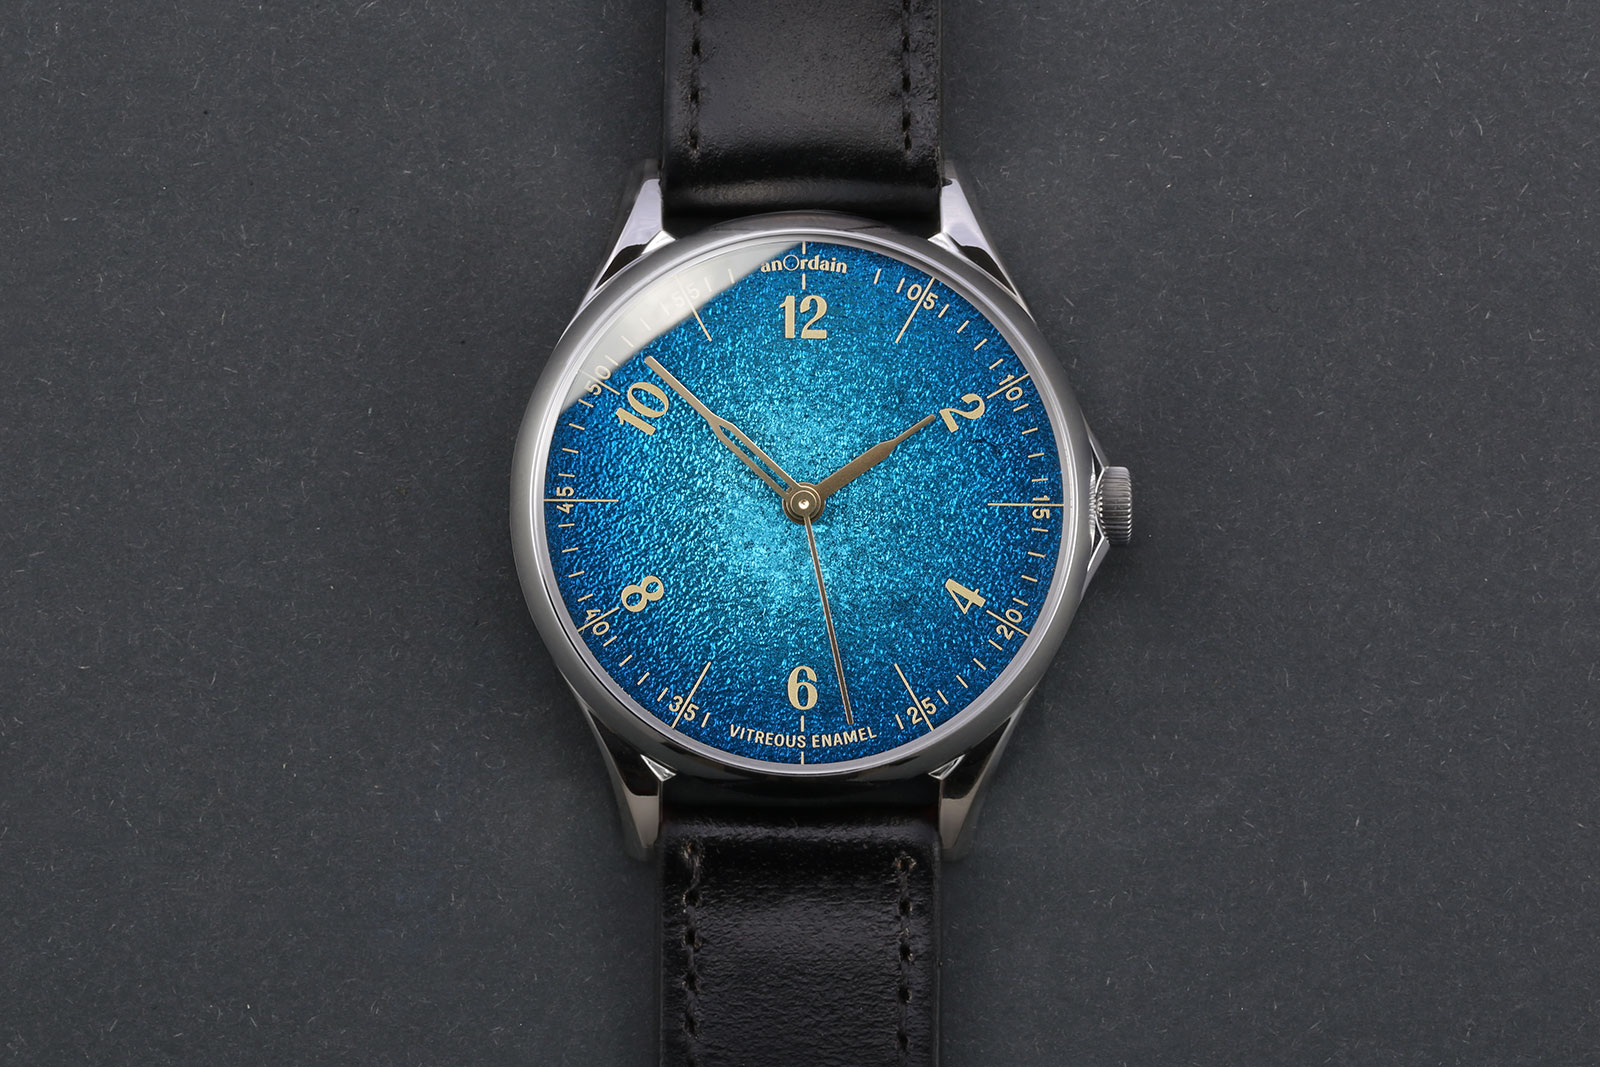 Anordain Introduces the Model 1 Fumé   SJX Watches